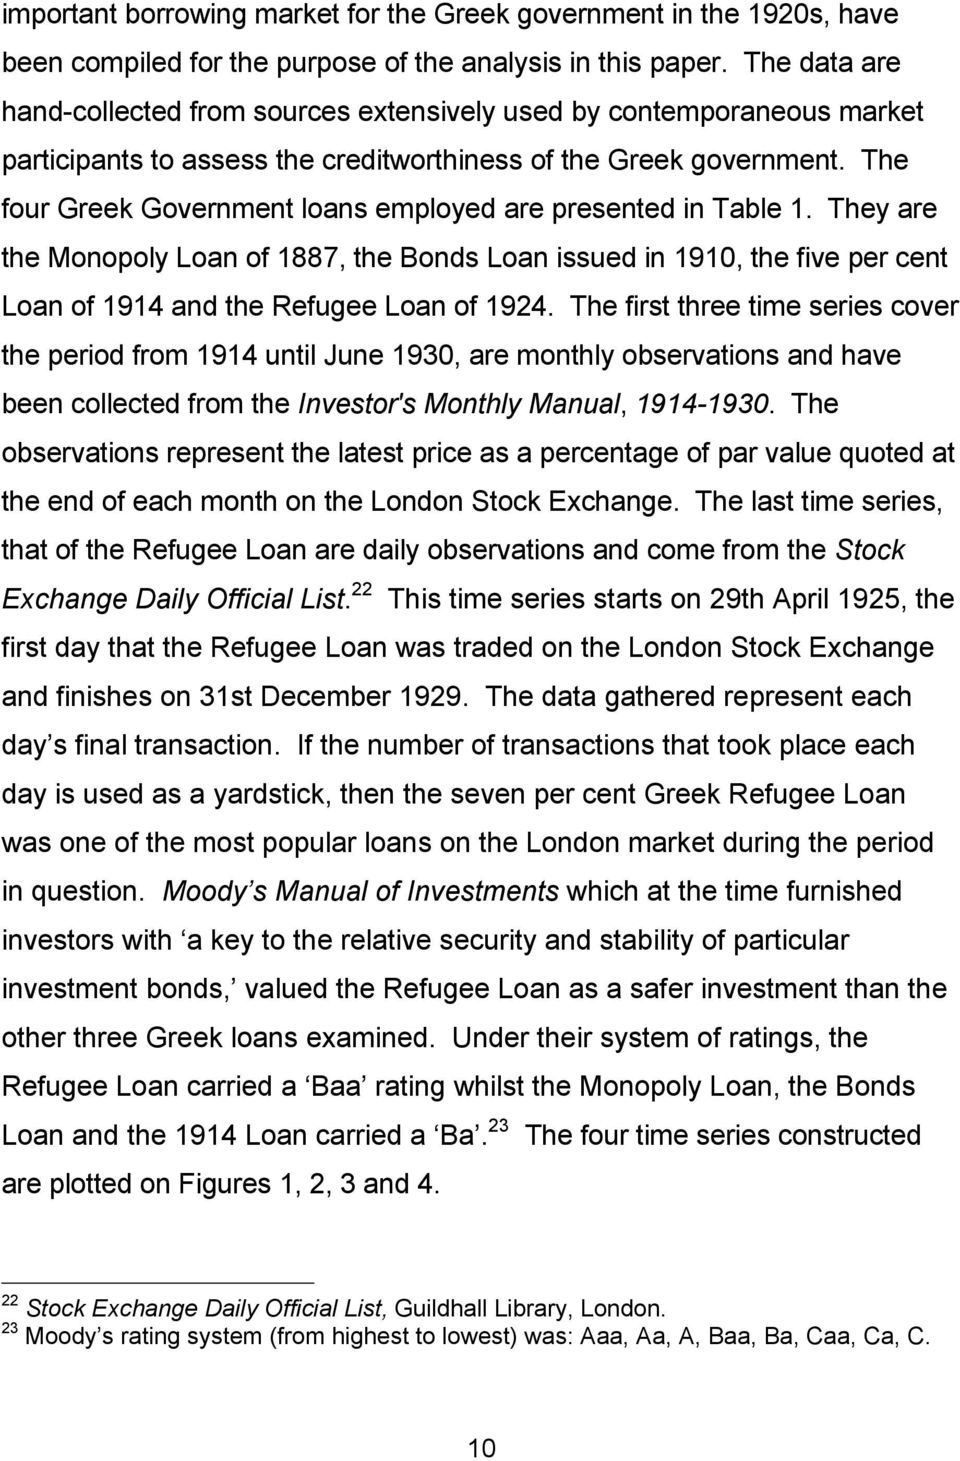 The four Greek Government loans employed are presented in Table 1. They are the Monopoly Loan of 1887, the Bonds Loan issued in 1910, the five per cent Loan of 1914 and the Refugee Loan of 1924.